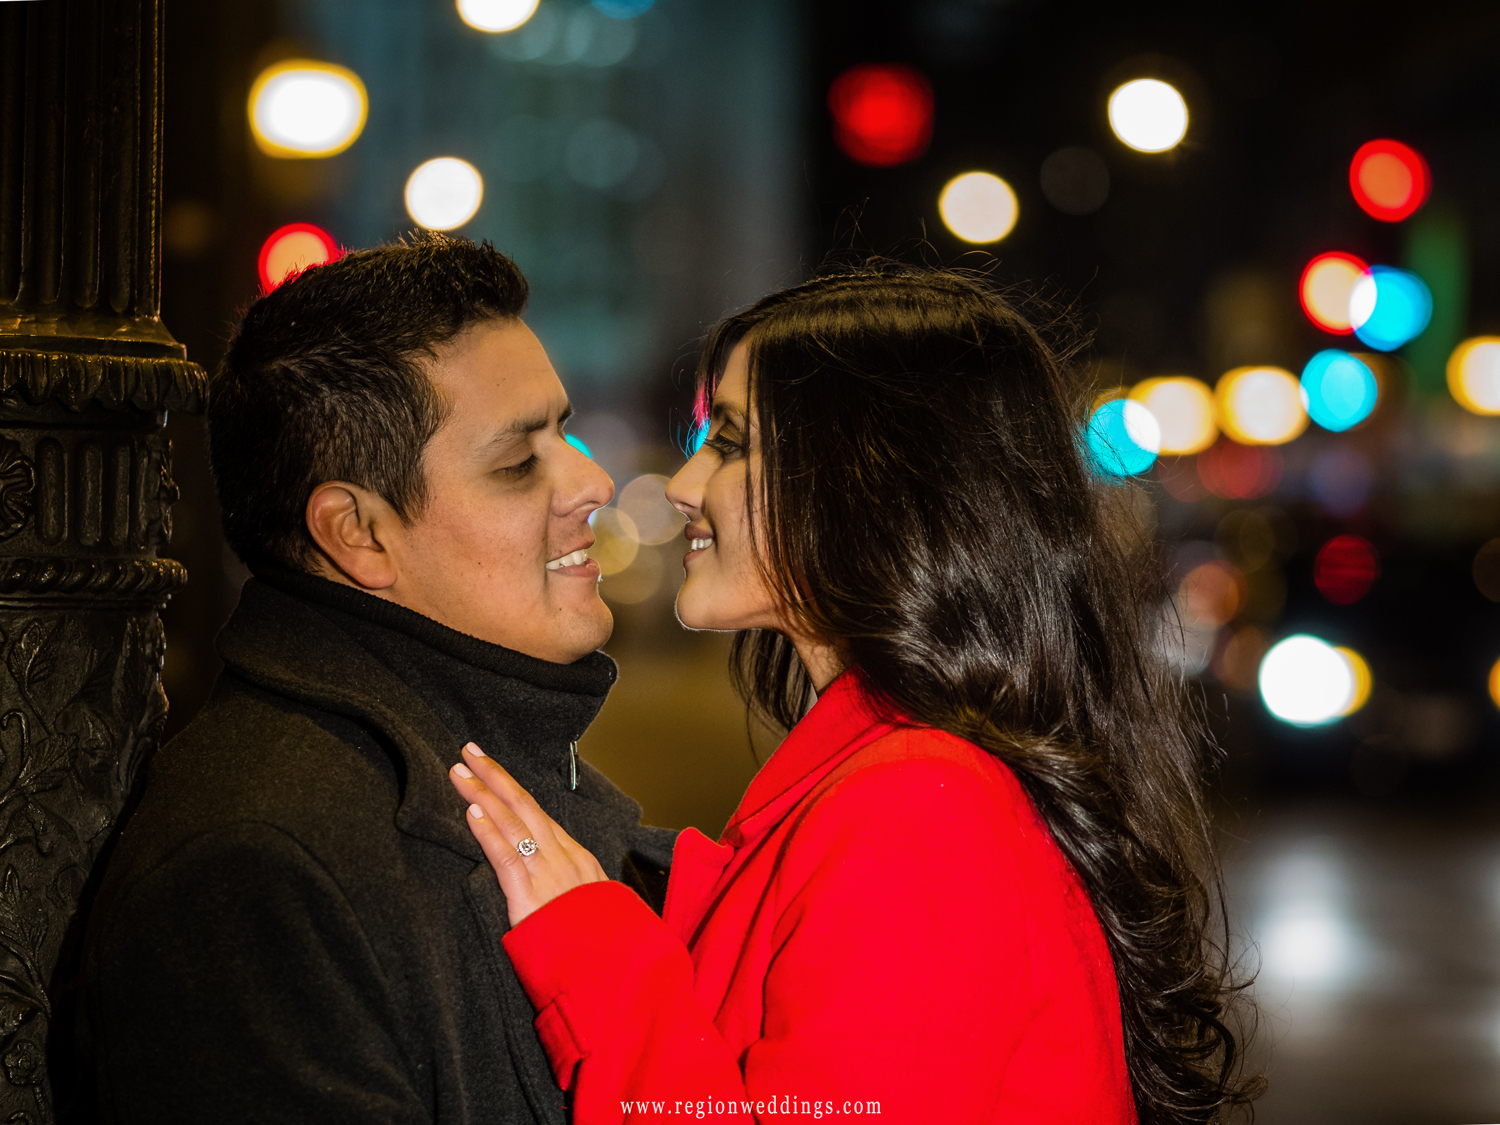 A couple tenderly embraces as city lights blur behind them at night.